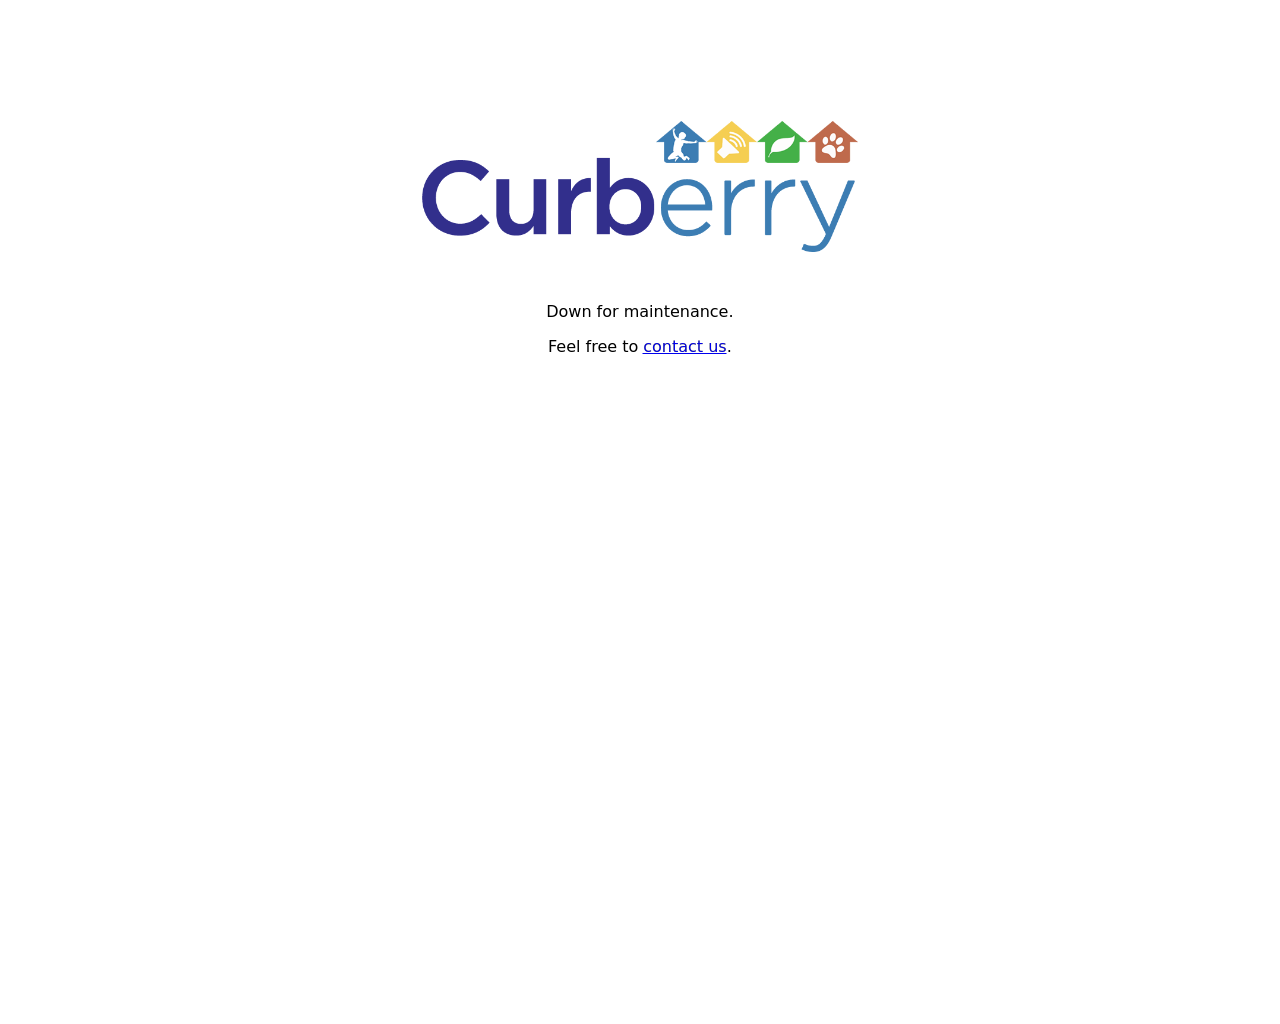 Curberry-Advertising-Reviews-Pricing